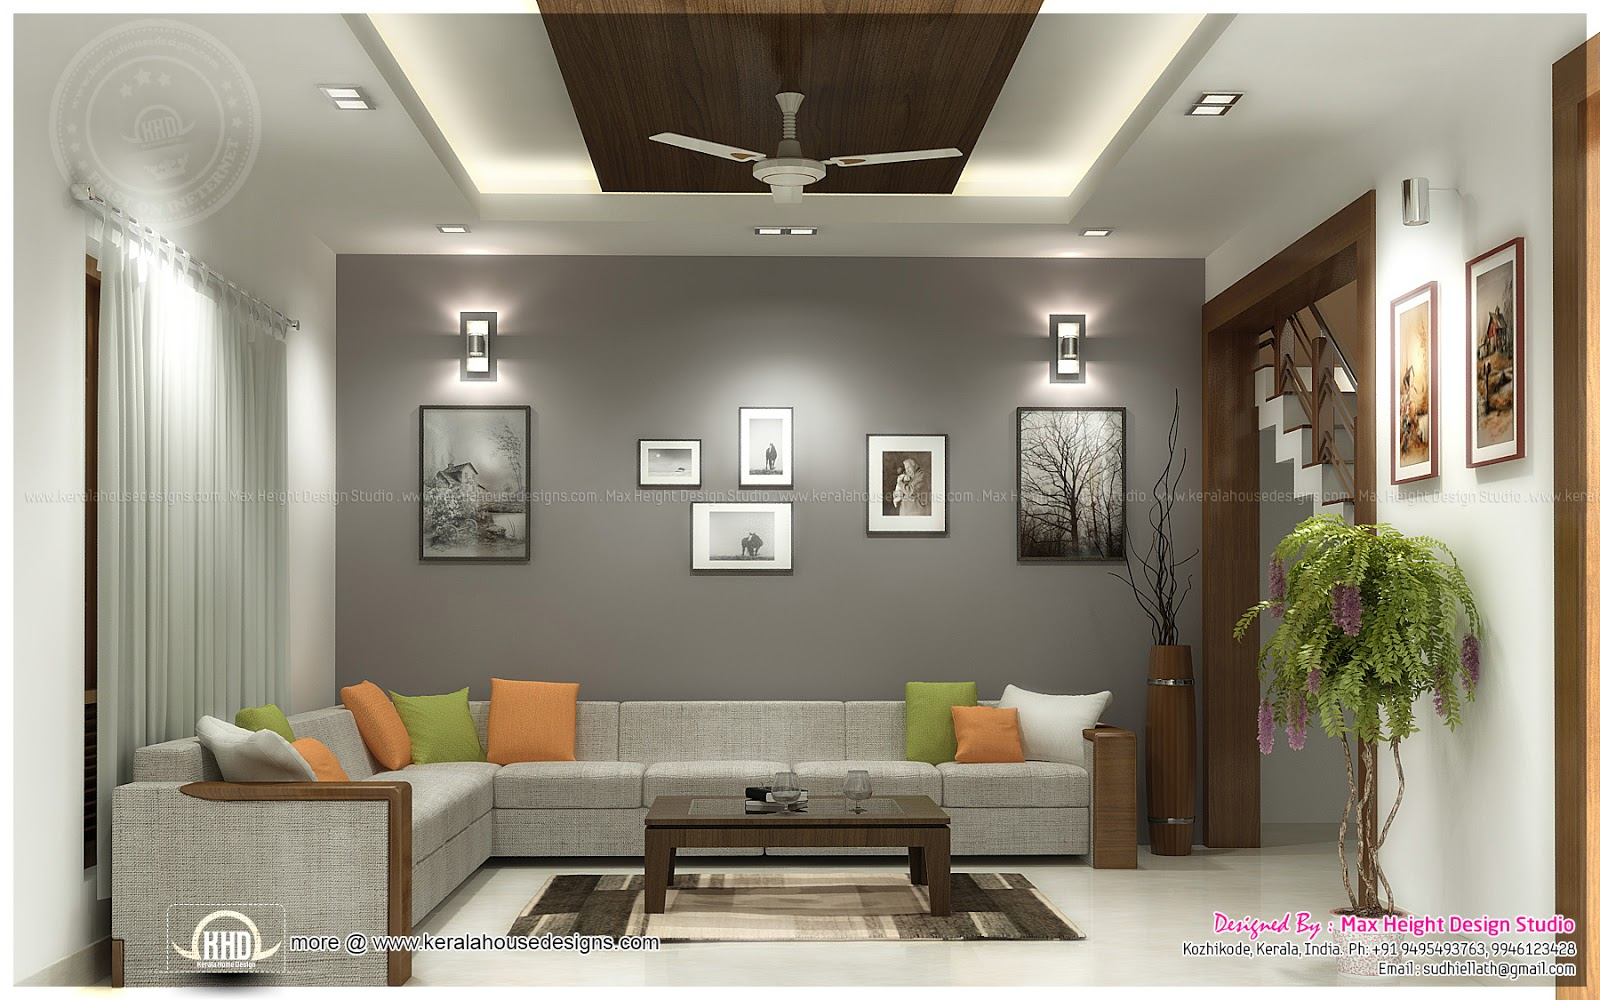 Beautiful interior ideas for home kerala home design and for Interior designs in home